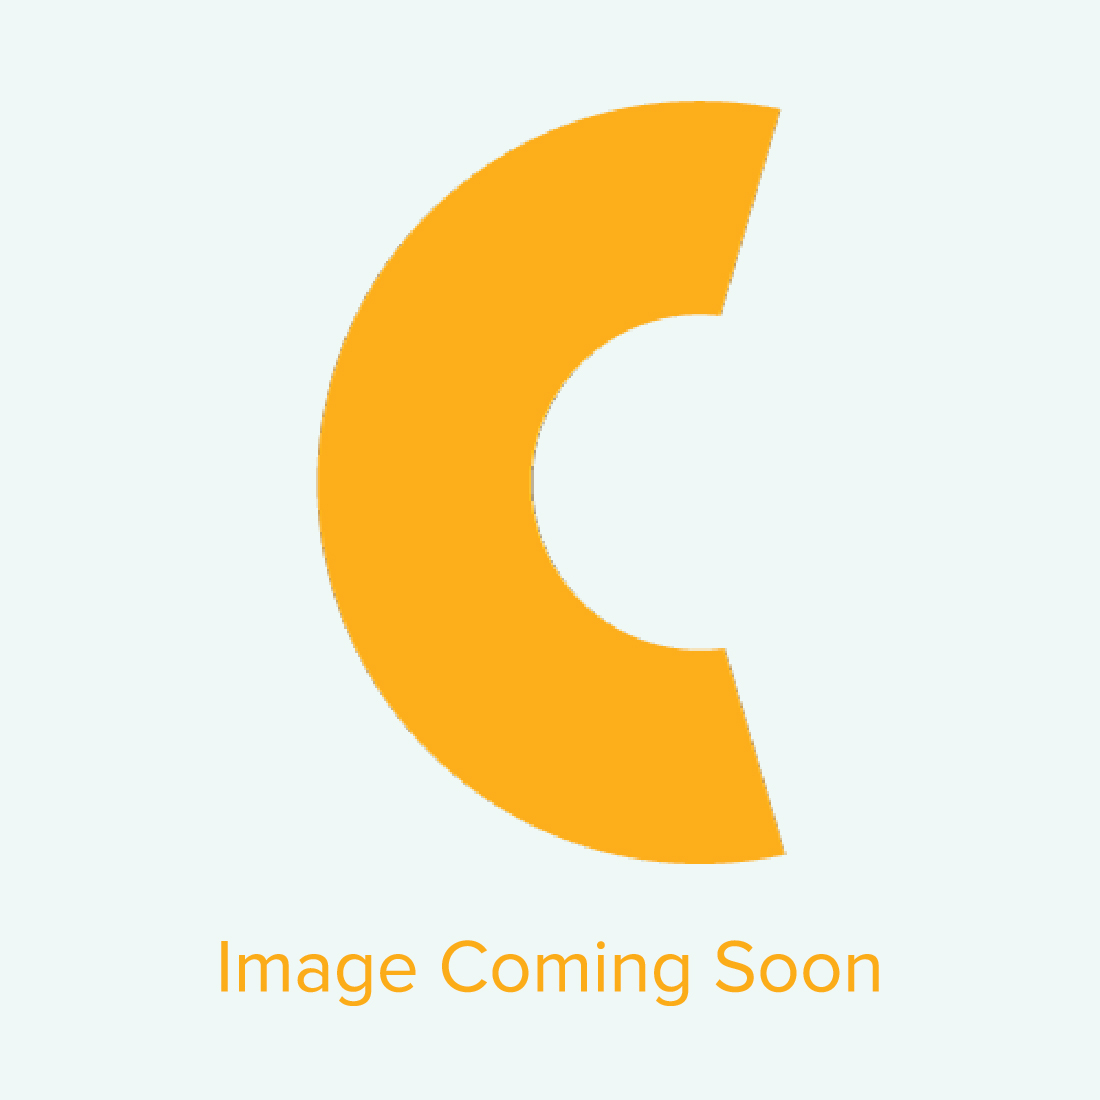 "Heat Transfer Paper for Inkjet Printers Sample Pack - 8.5"" x 11""(15 sheets)"